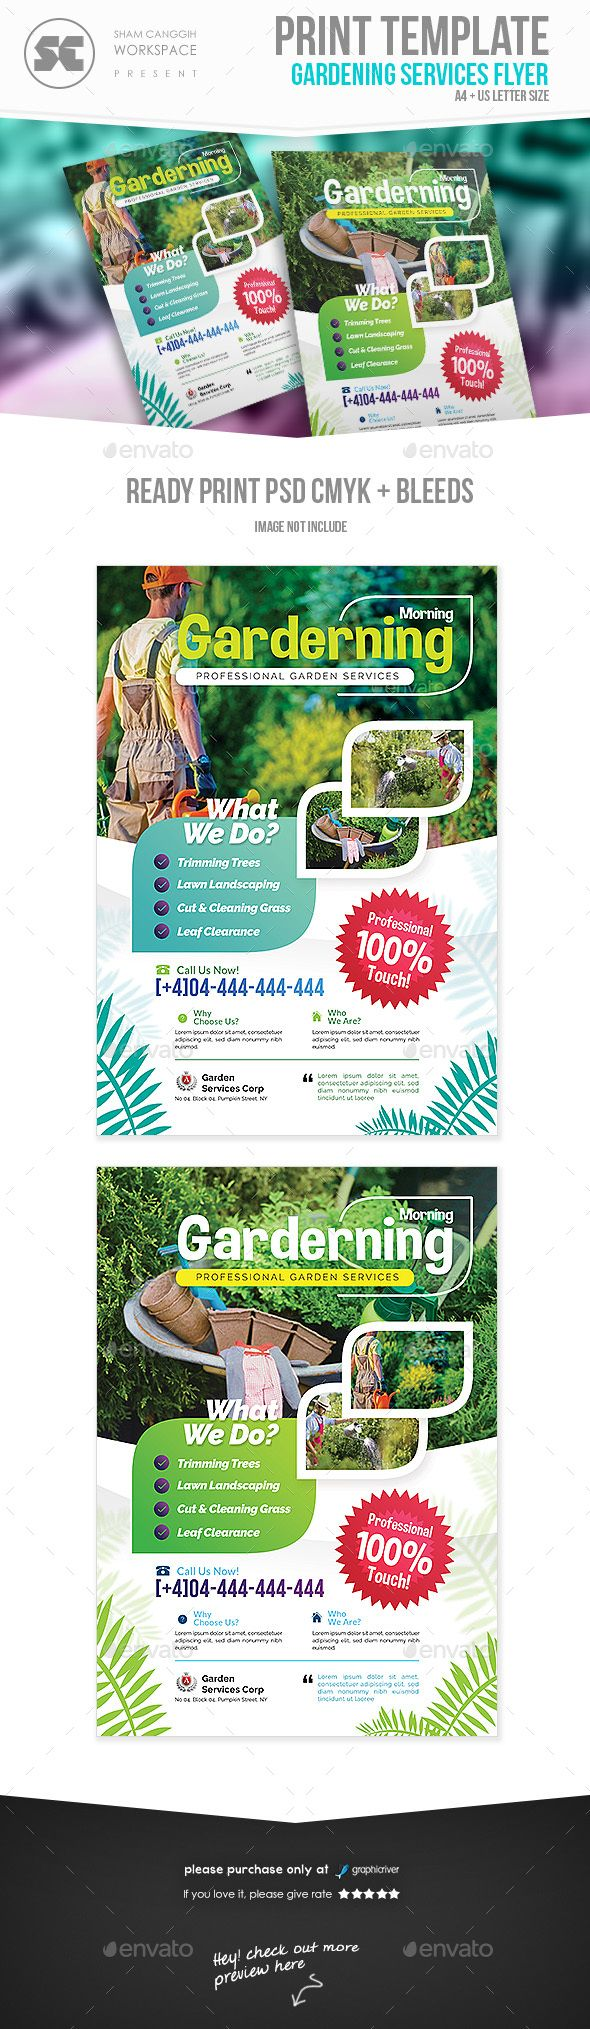 Garden Services Flyer Template PSD